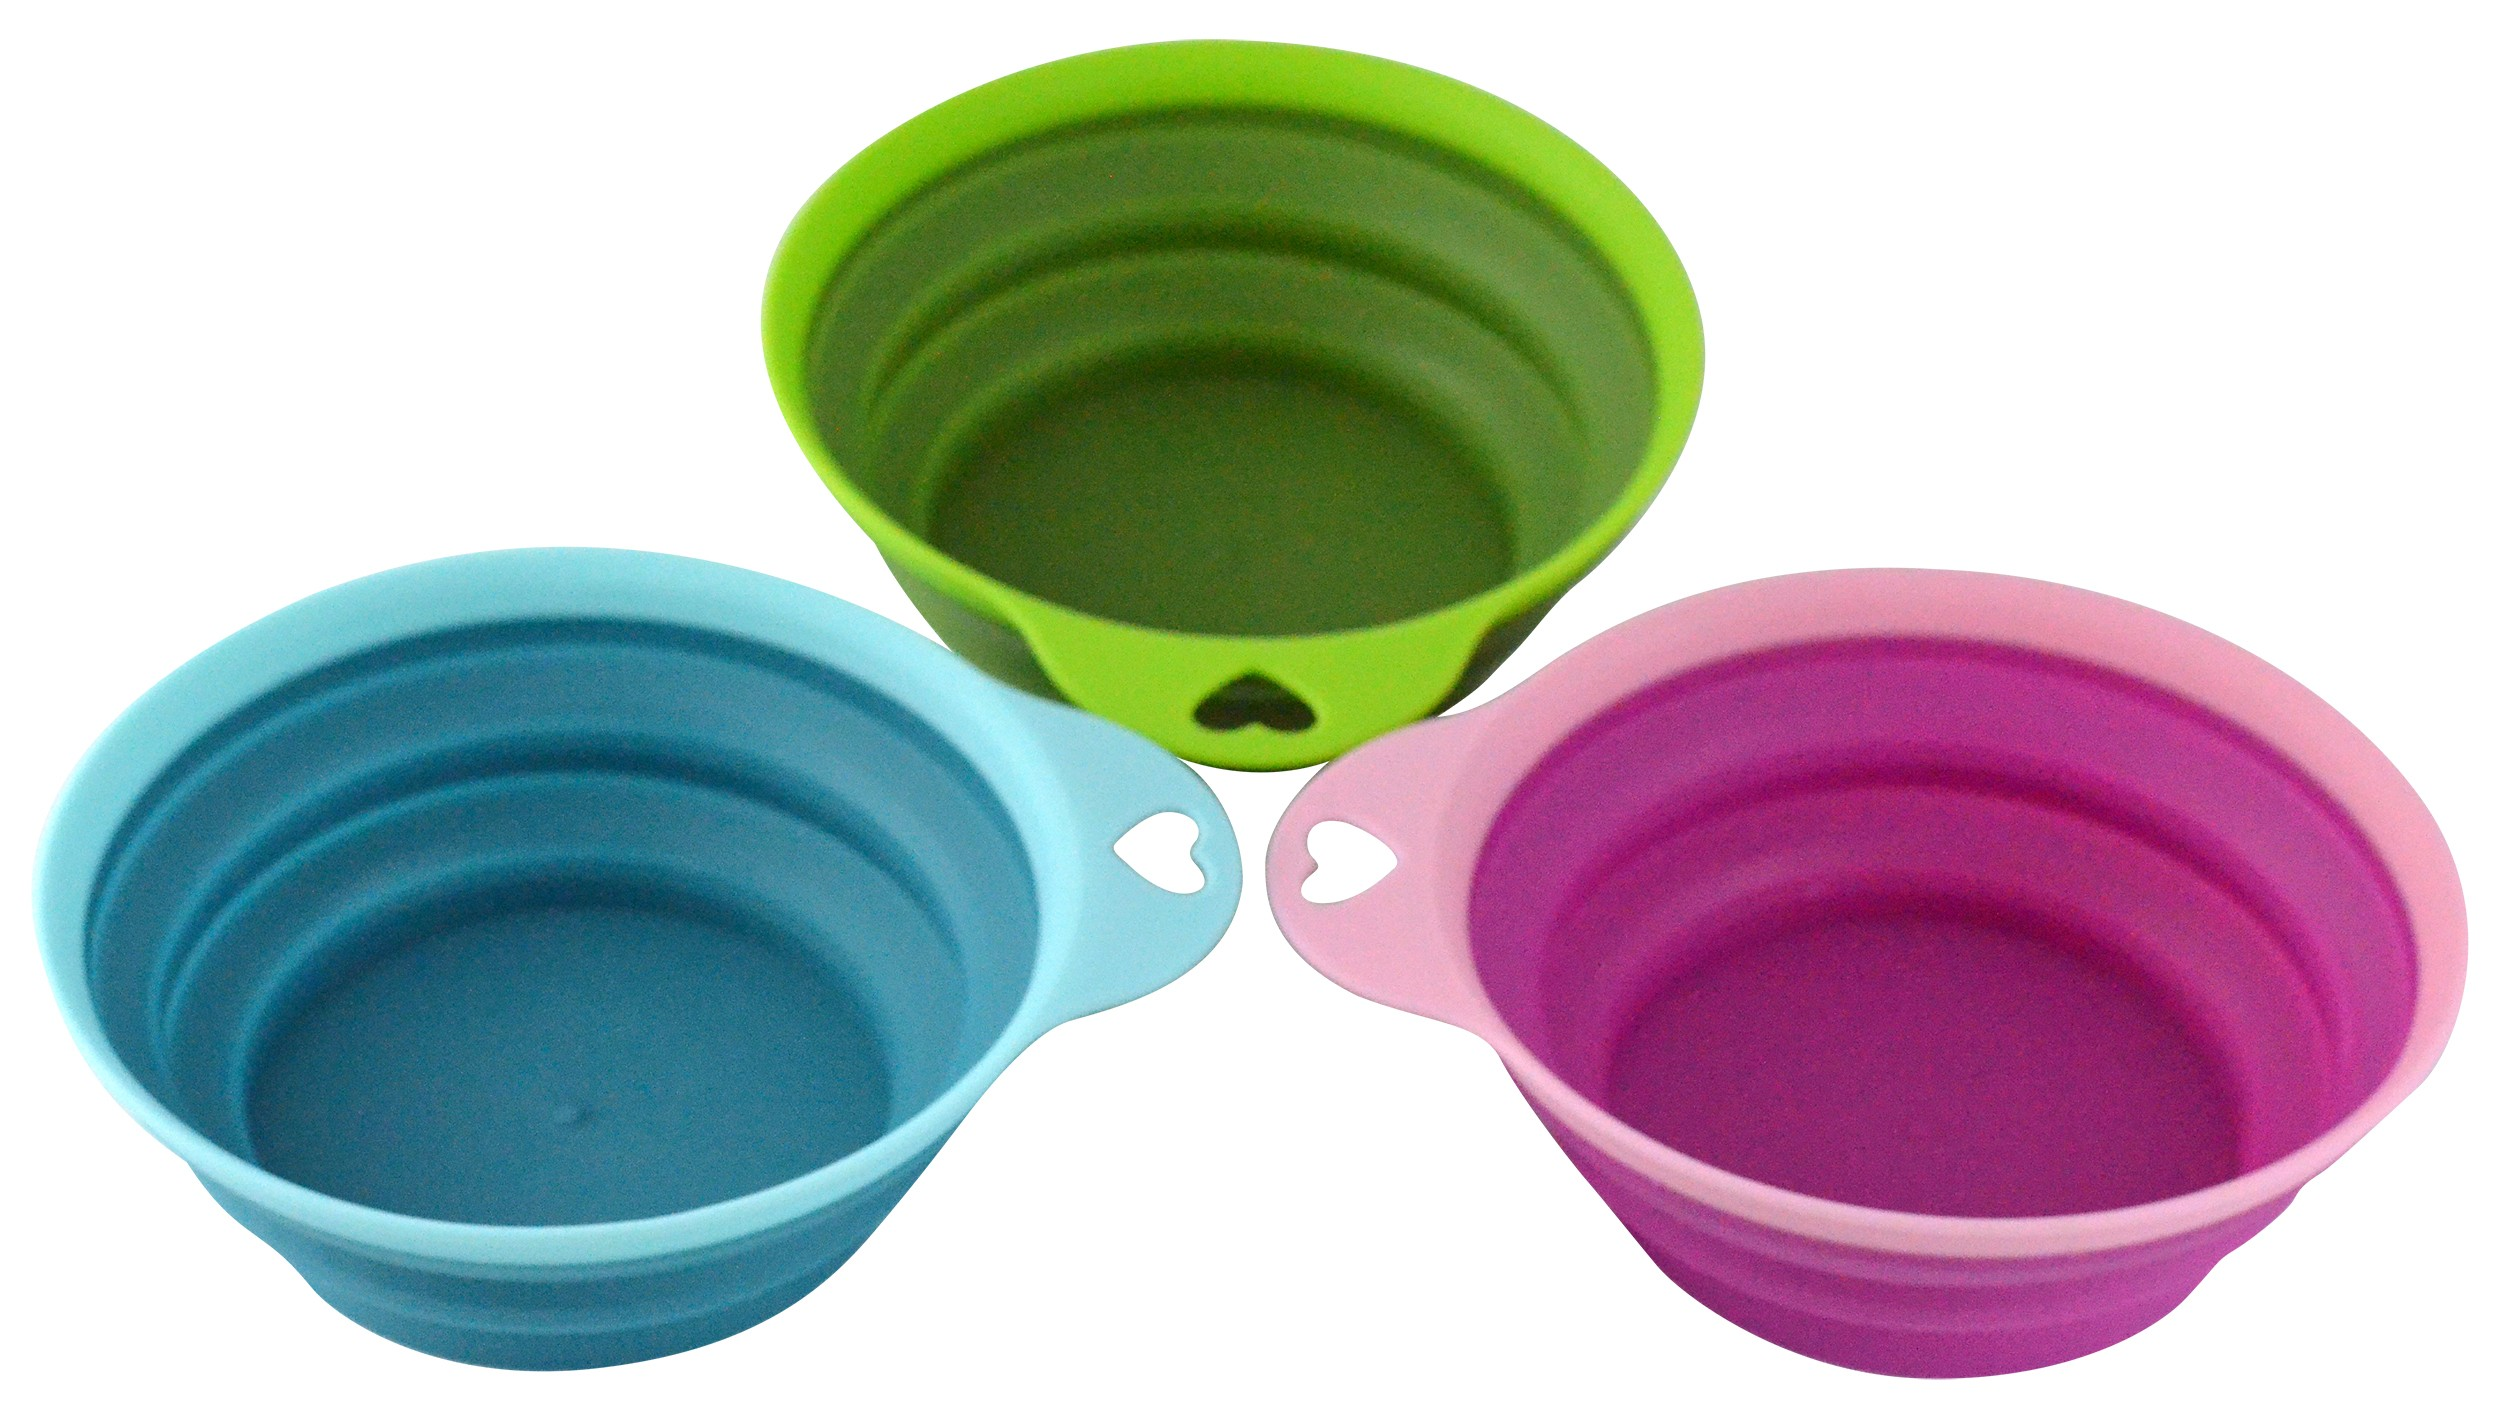 Collapsible Silicone Bowl Set, 3 Piece